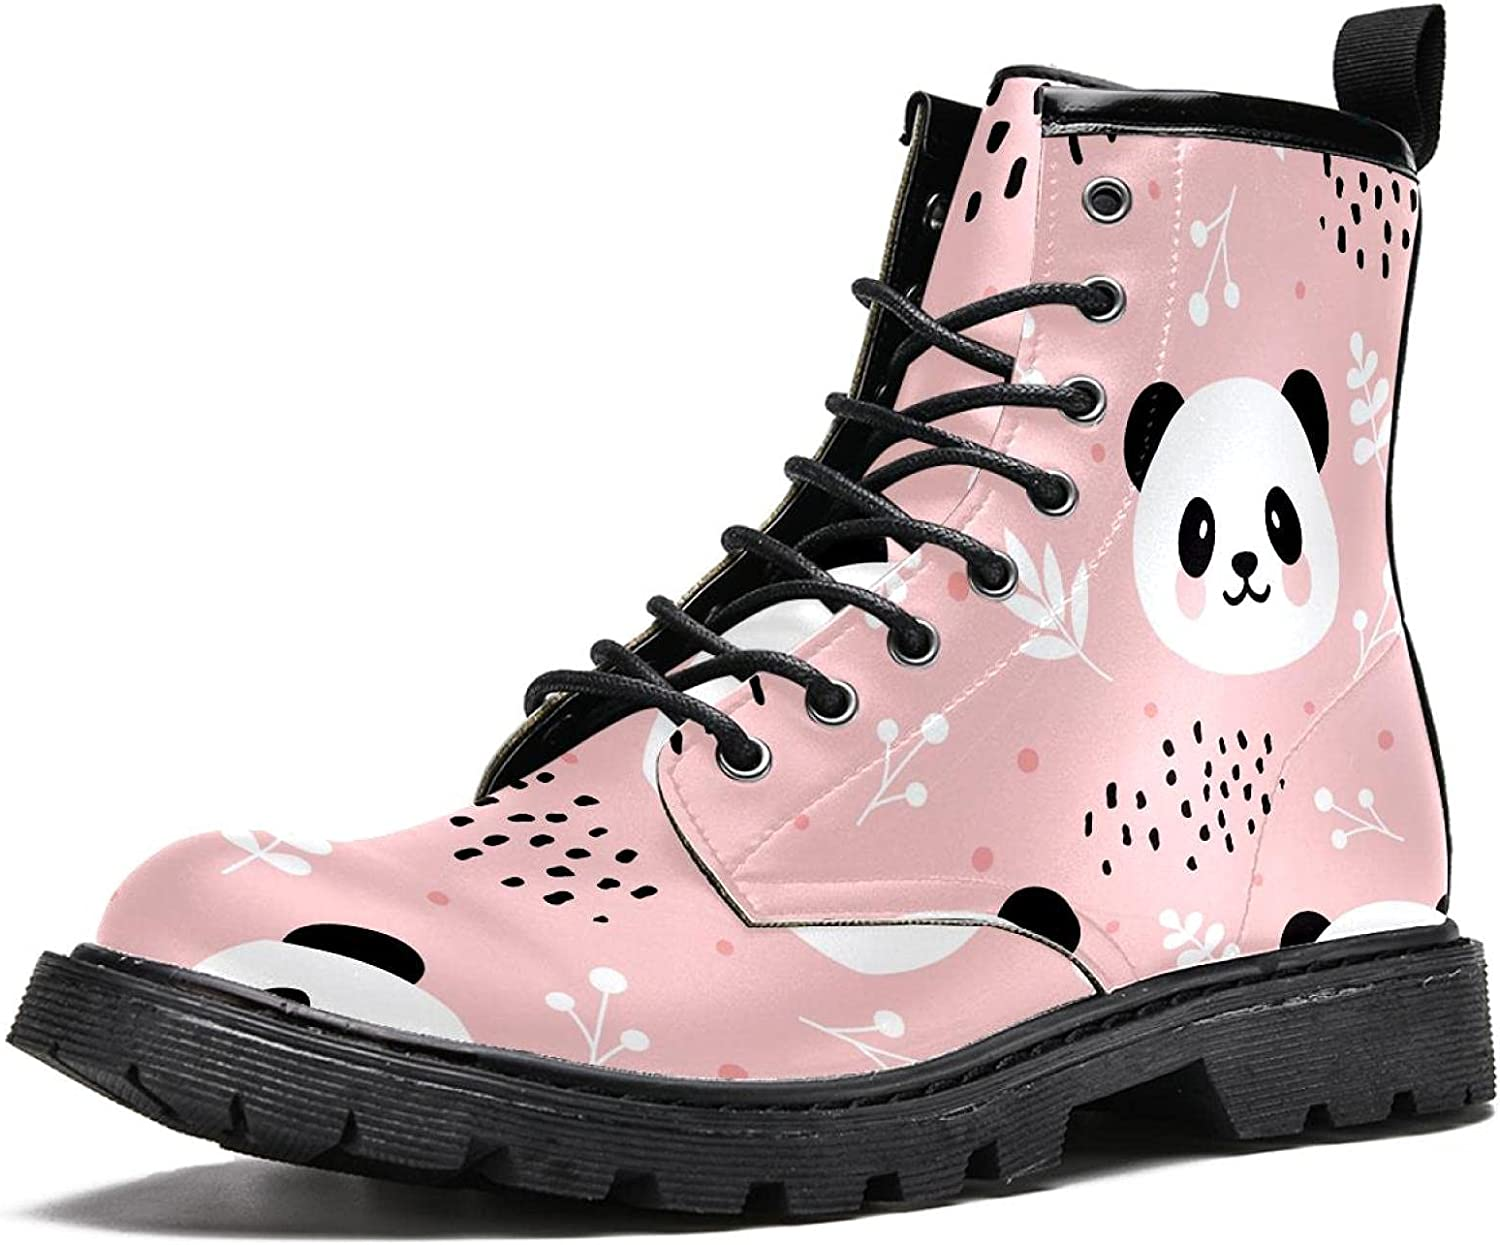 Pink Tree Branch Panda, Men's Stylish High Top Boots Hiking Boots Durable Leather Waterproof and Non-Slip Boots Suede Lining Casual Soft and Warmth